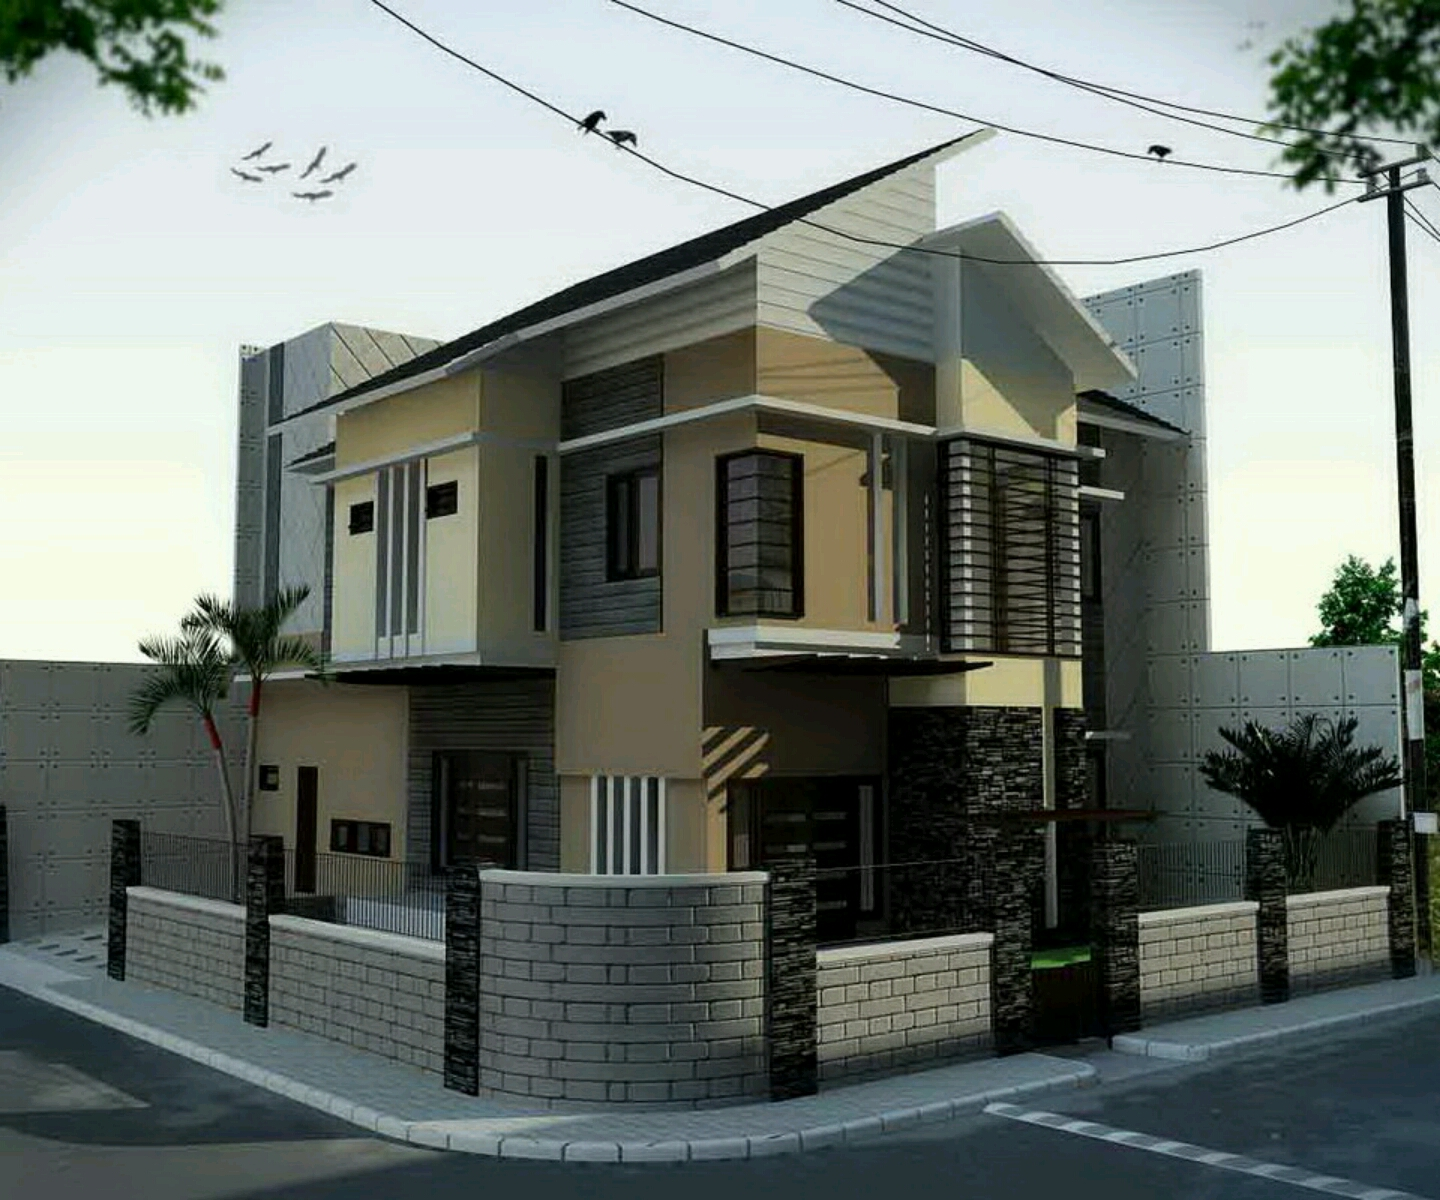 New home designs latest.: Modern homes designs front views.